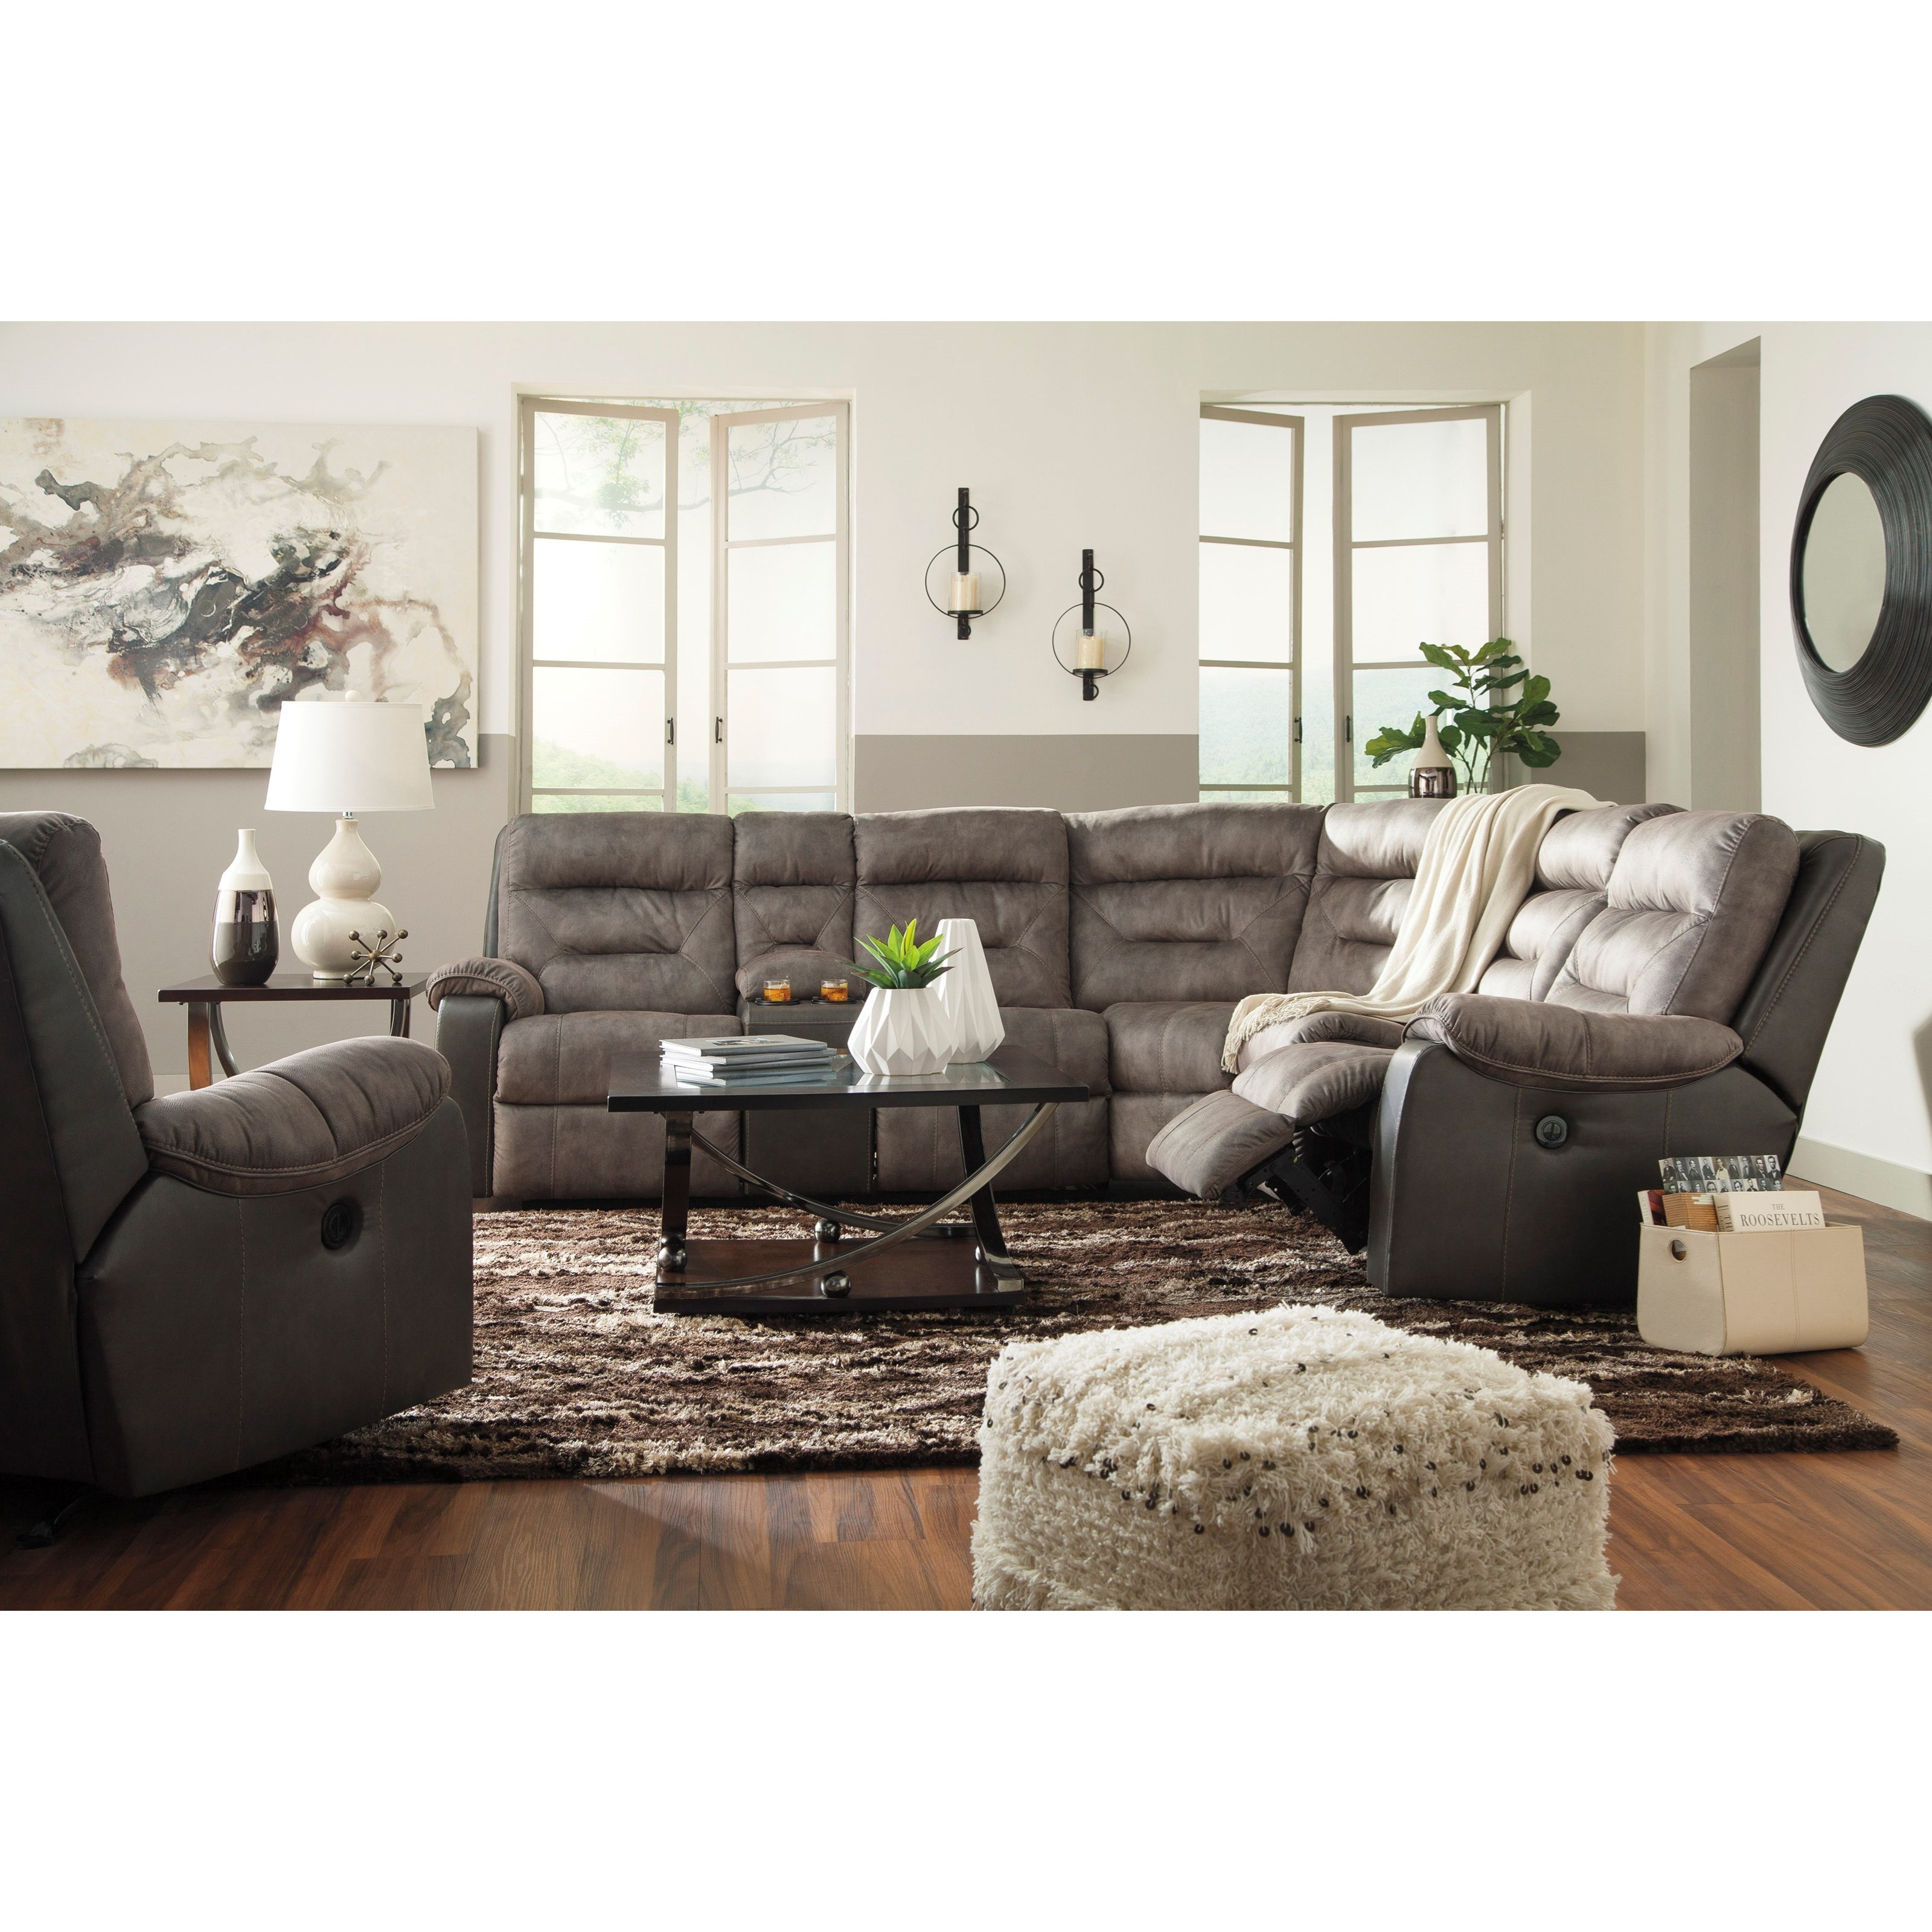 Benchcraft By Ashley Hacklesbury Reclining Living Room Group Royal Furniture Reclining